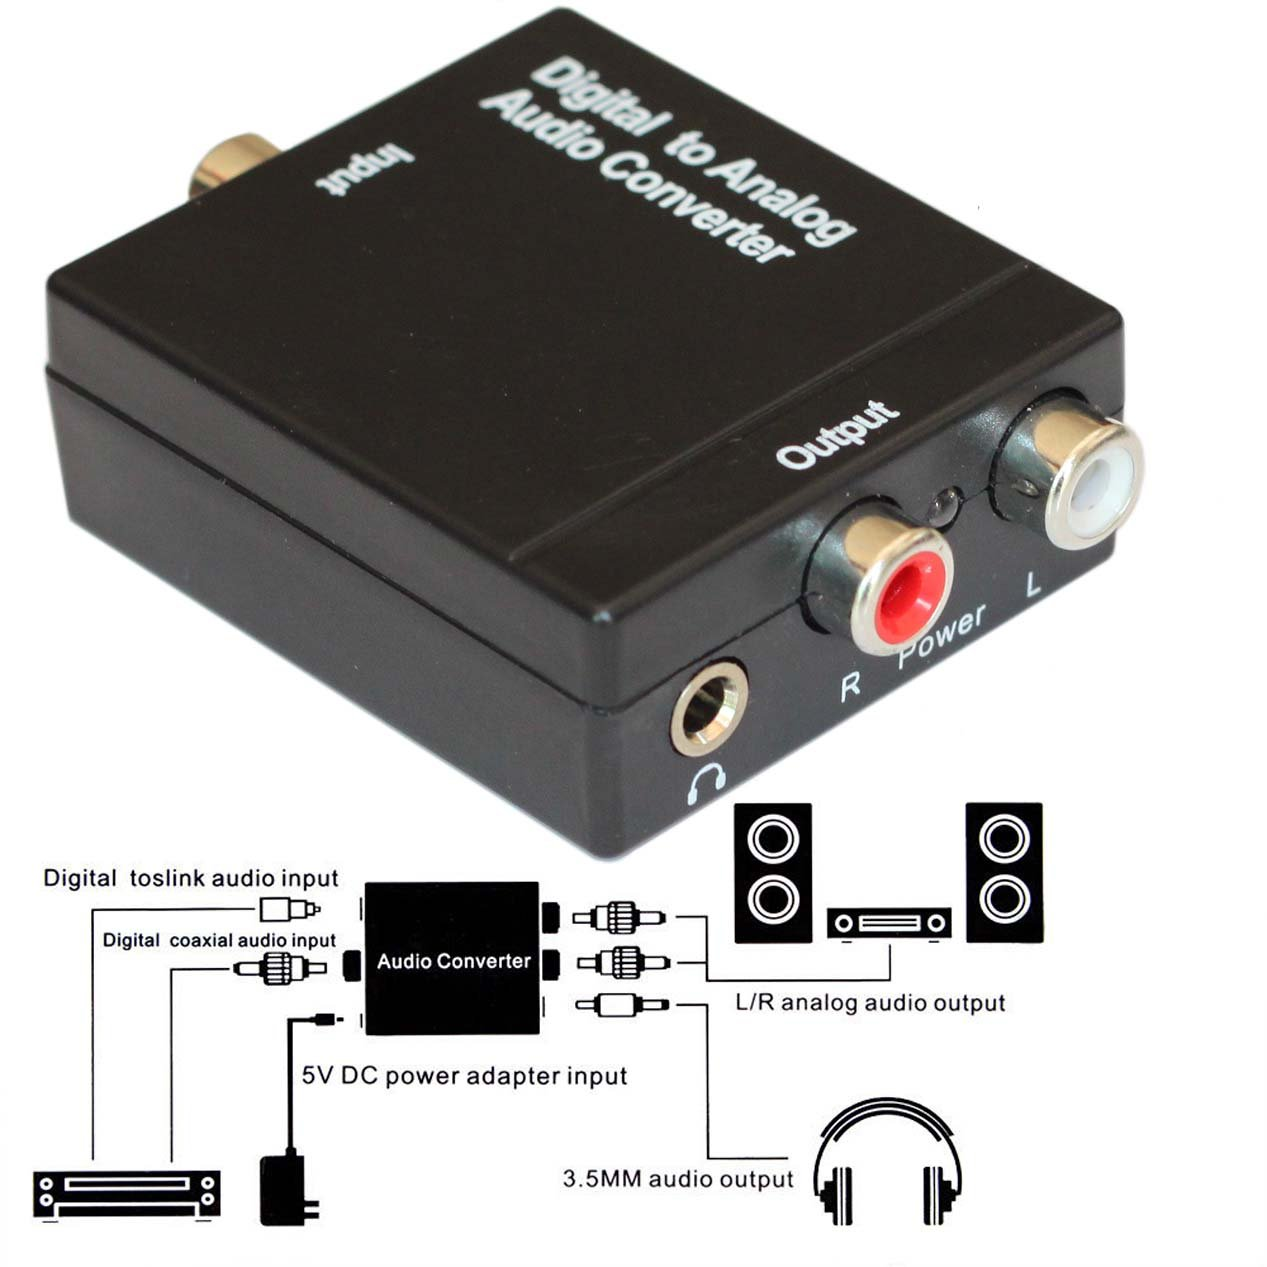 Amazon.com: EASYDAY Digital to Analog Audio Converter - Optical SPDIF Toslink Coaxial to RCA L/R Adapter with 3.5mm Jack, 24-bit 192kHz DAC Supports ...